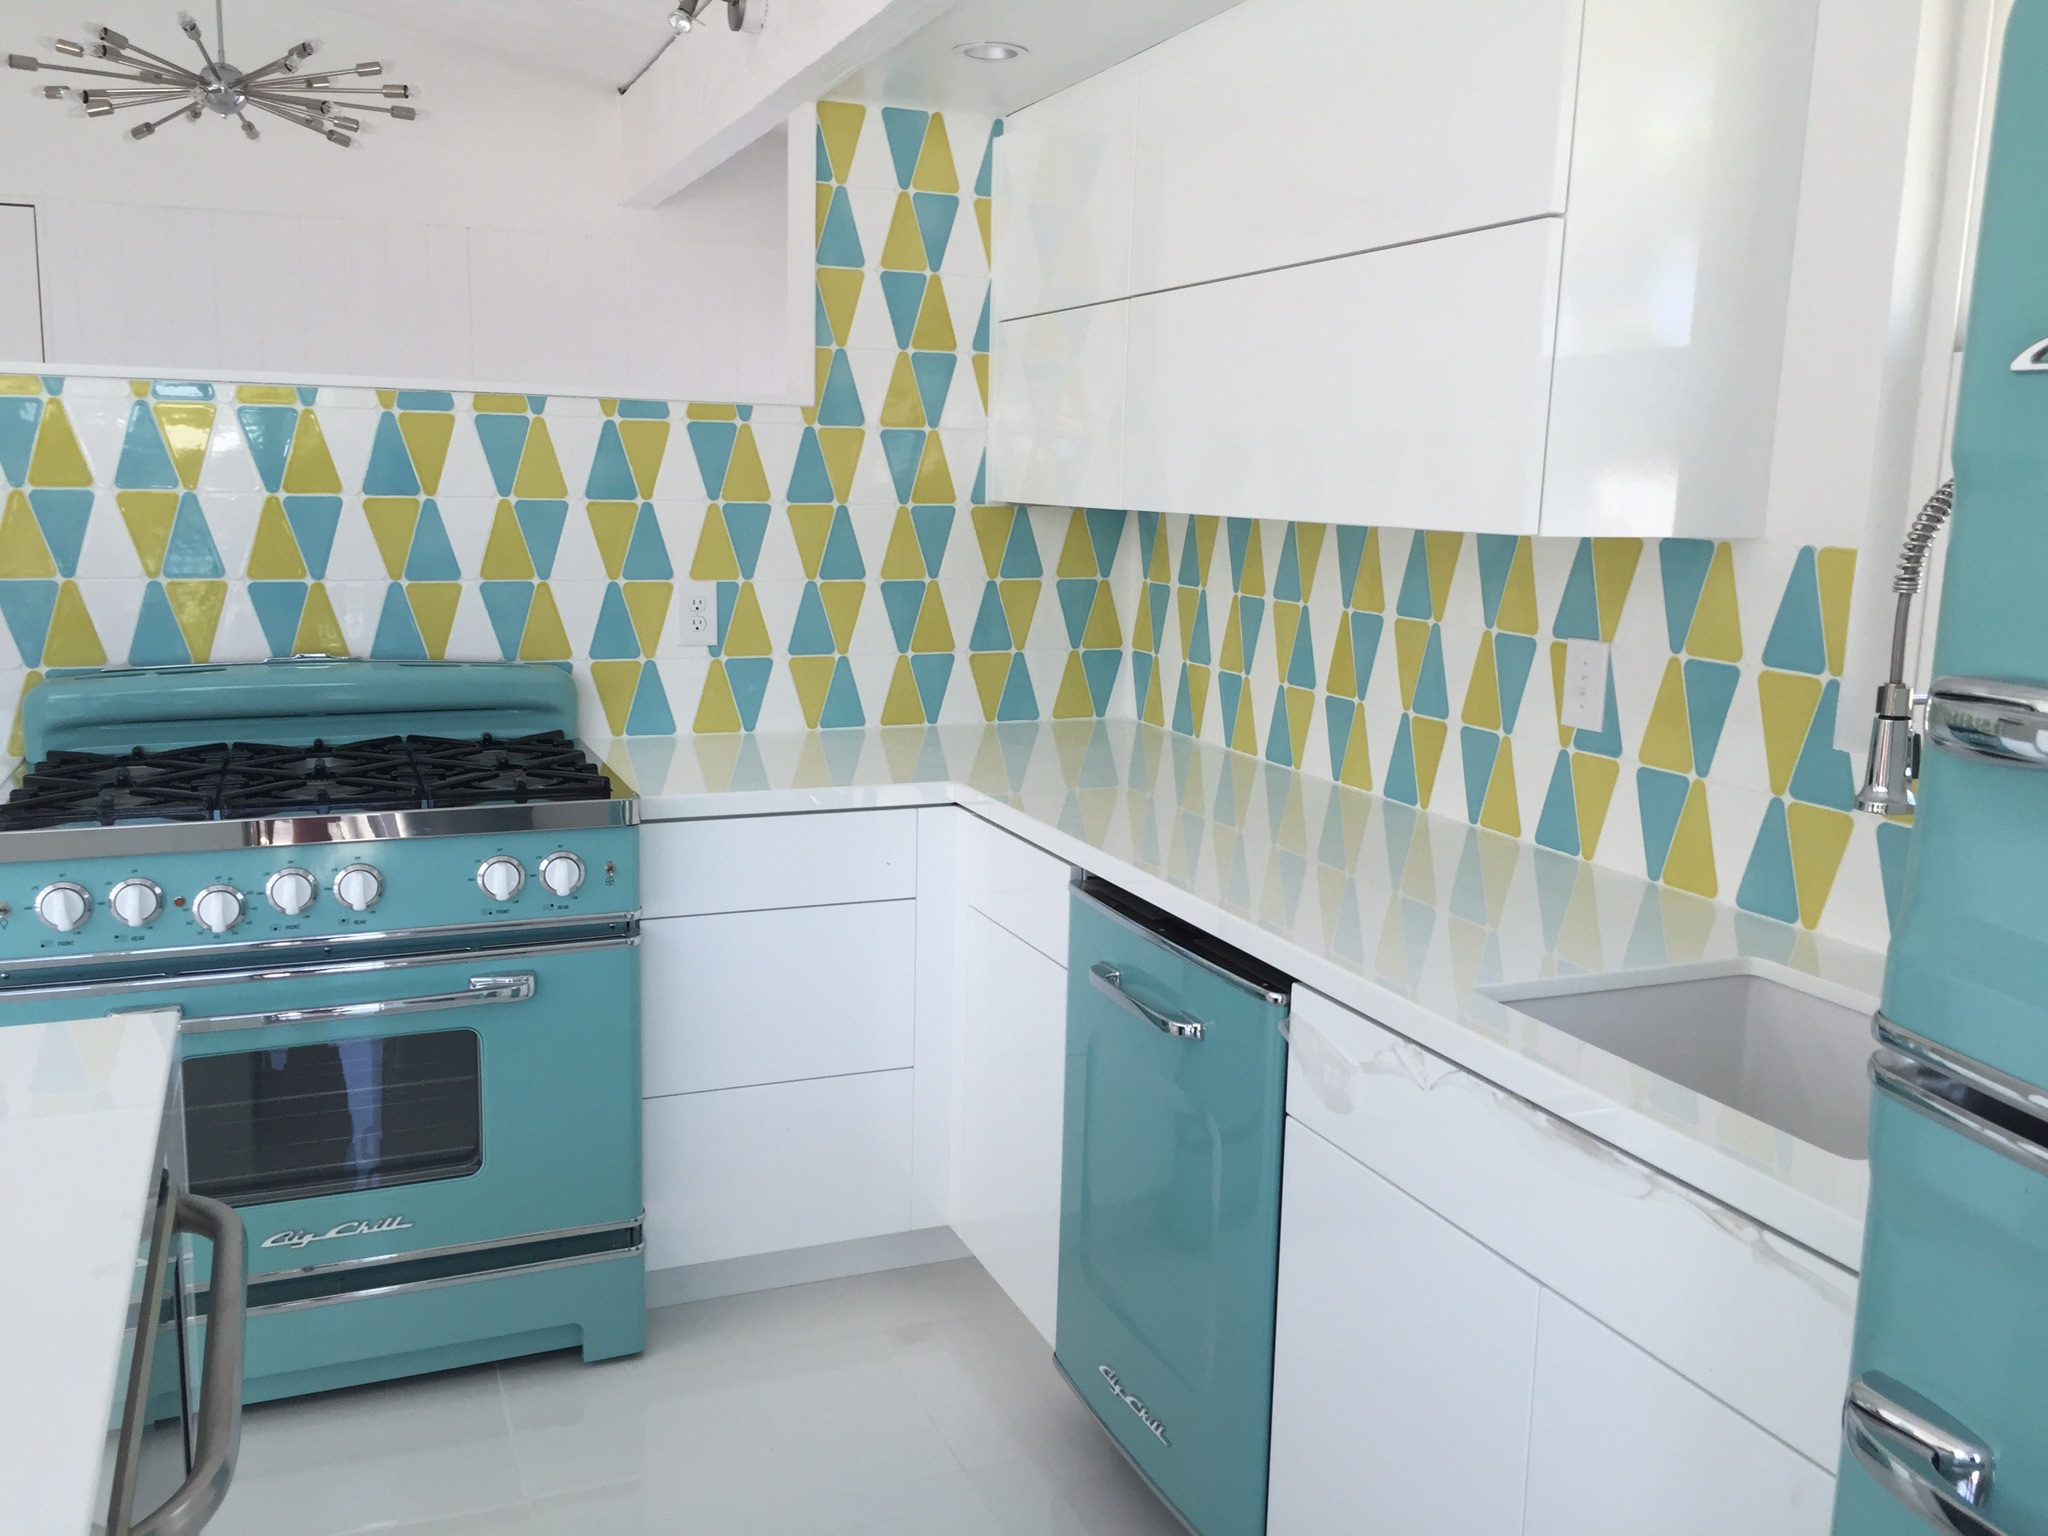 13 Must See Retro Big Chill Kitchen Layouts